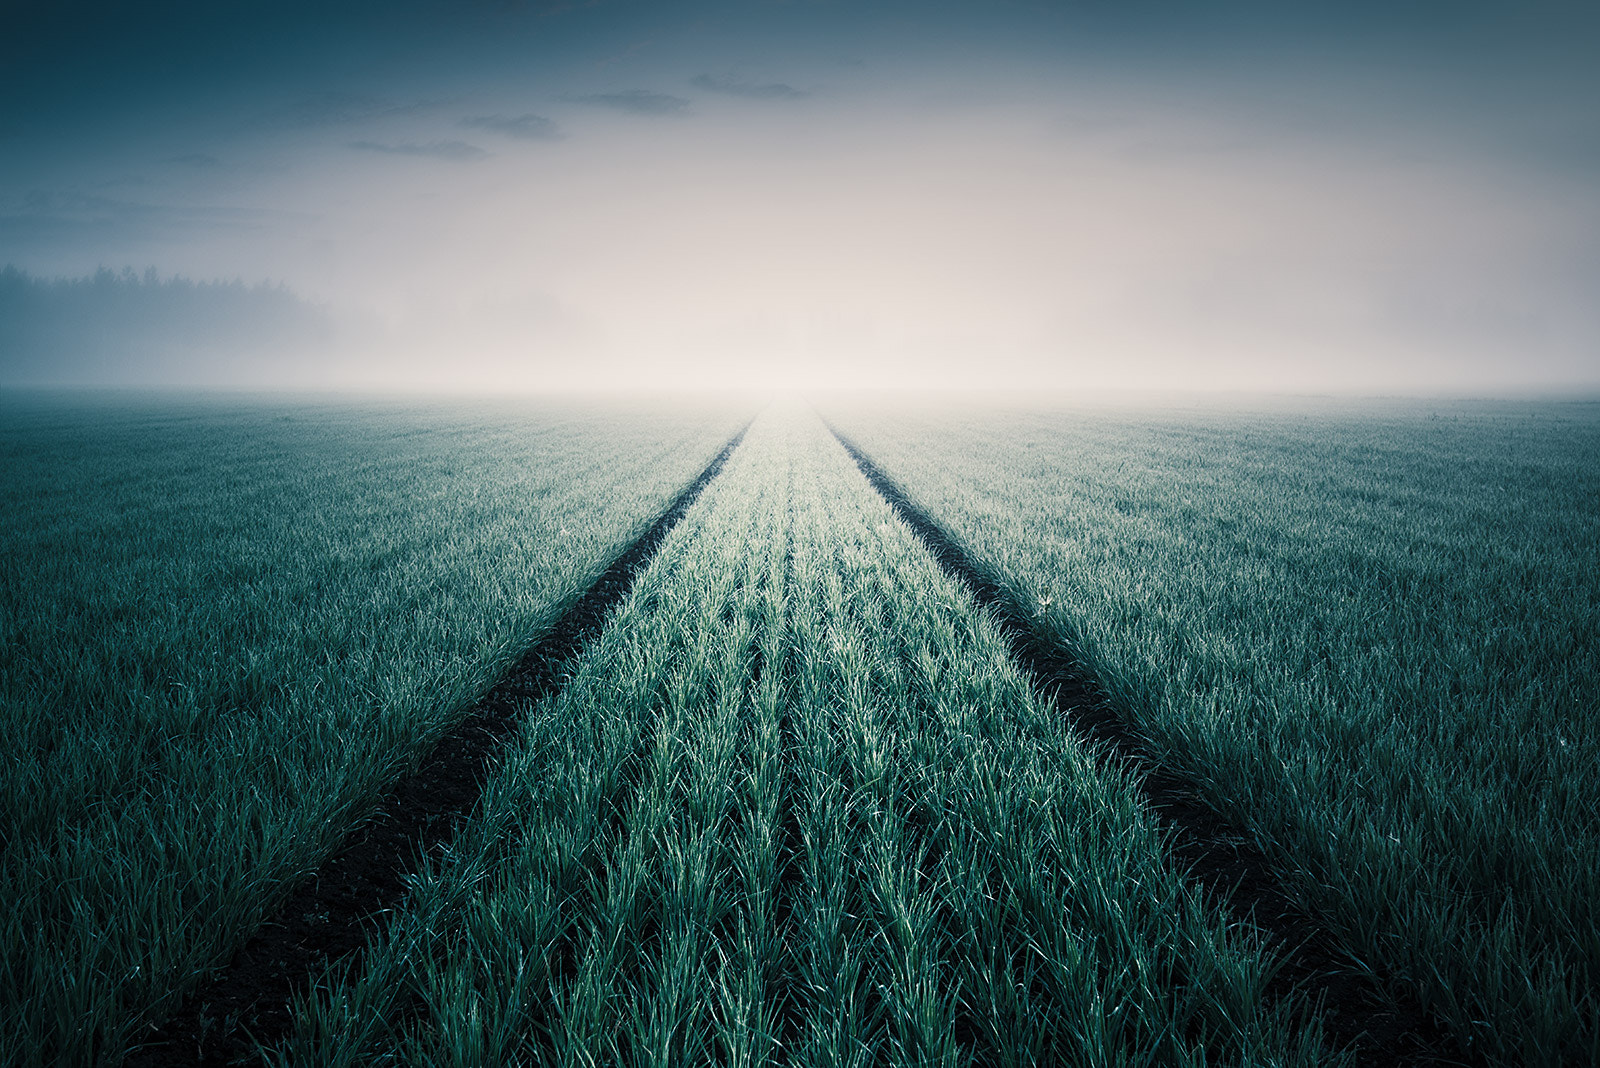 Photograph Infinity by Mikko Lagerstedt on 500px